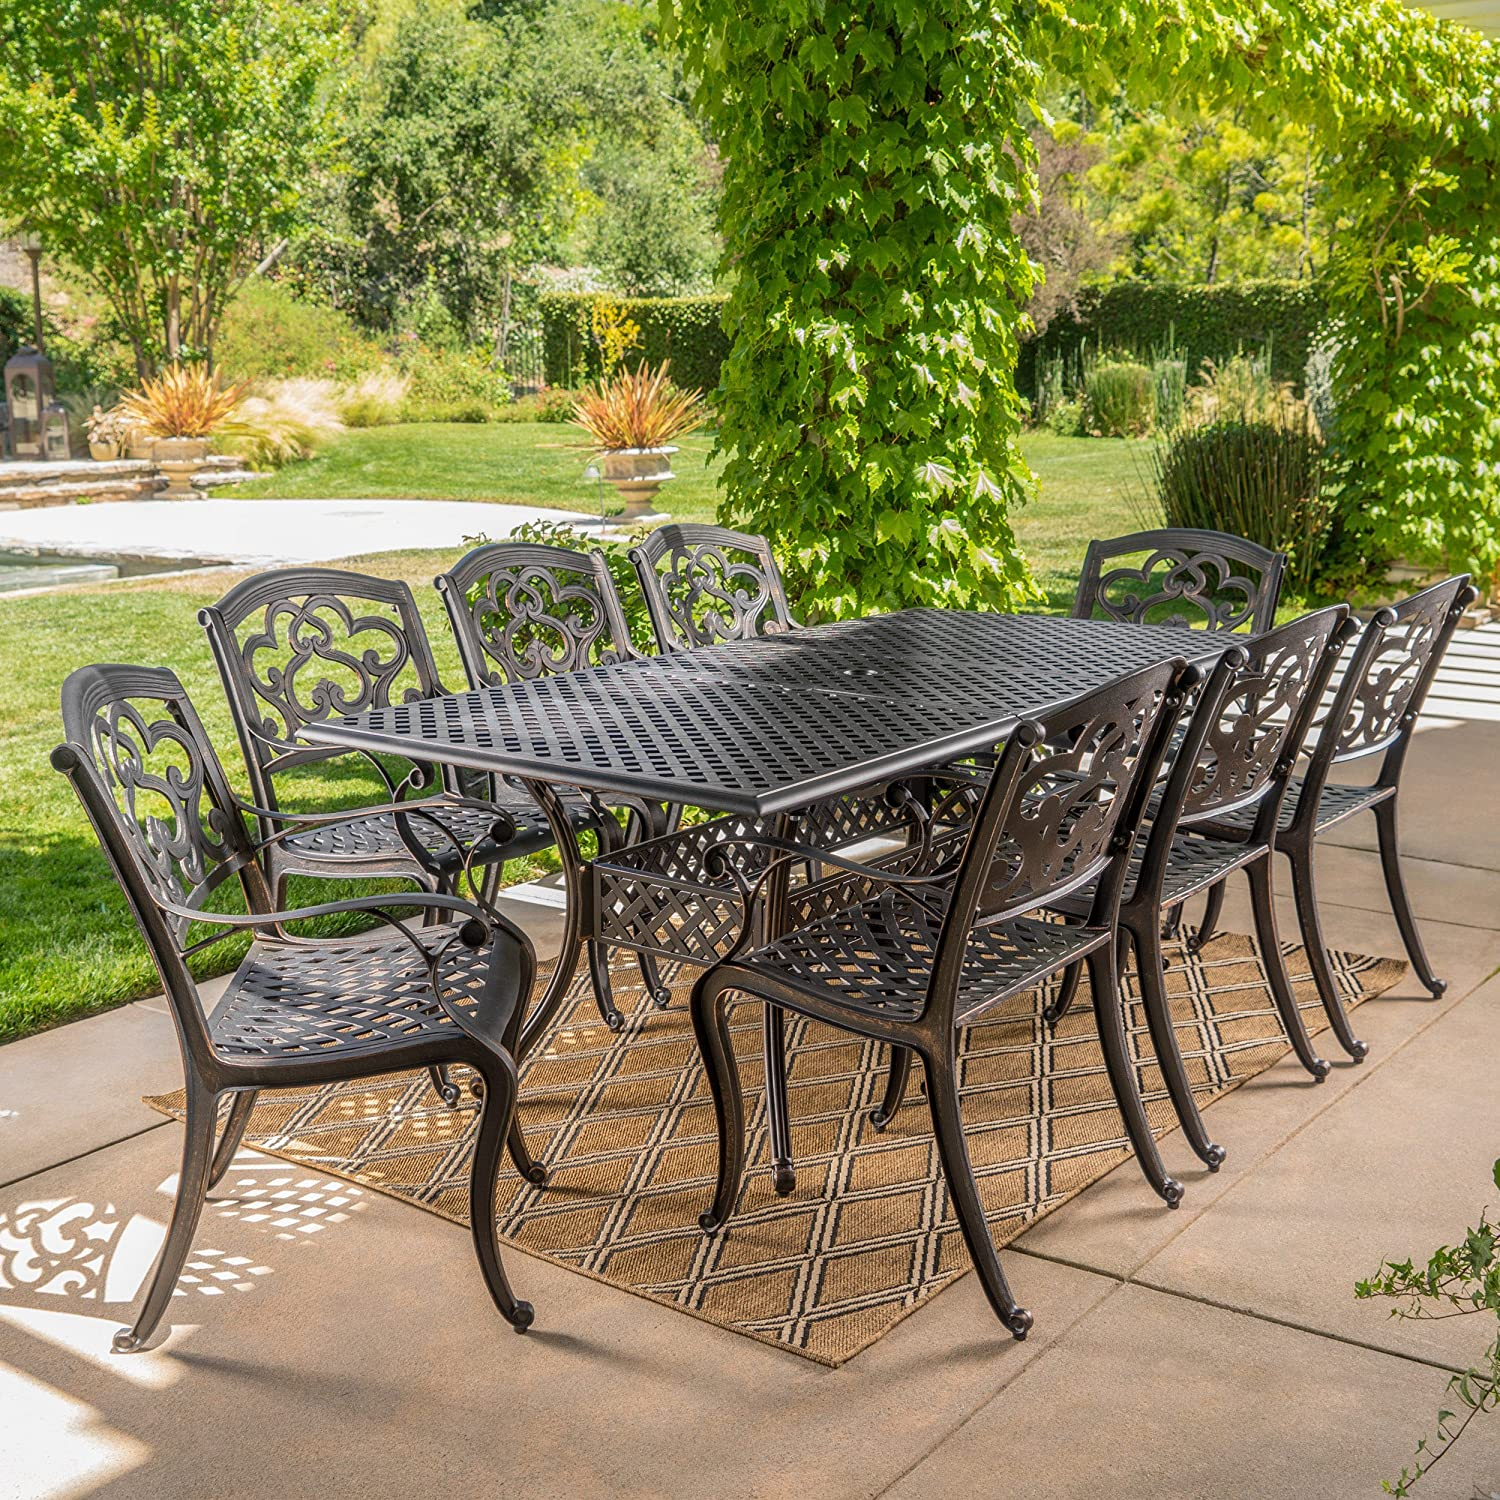 Christopher Knight Patio Furniture.Christopher Knight Home 300676 Ariel 9 Piece Outdoor Cast Aluminum Dining Set Rectangle Perfect For Pat